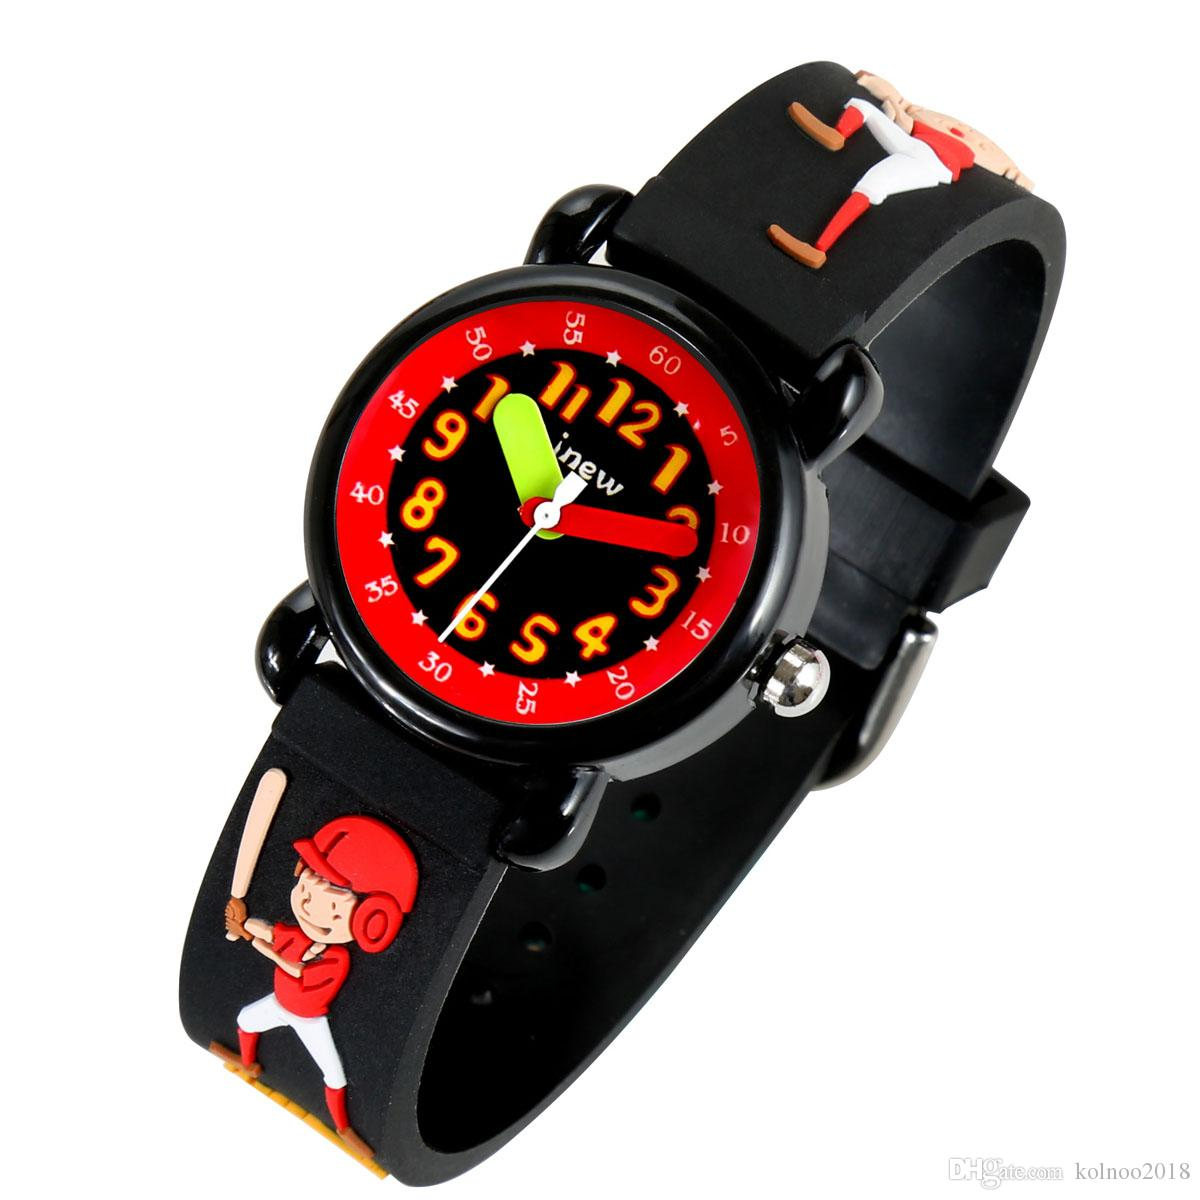 2019 Children's New Design Watches Base-ball Boy Style Round-case Kids Watch Acrylic Glass Fashion Students Wrist Watches Black No:86131